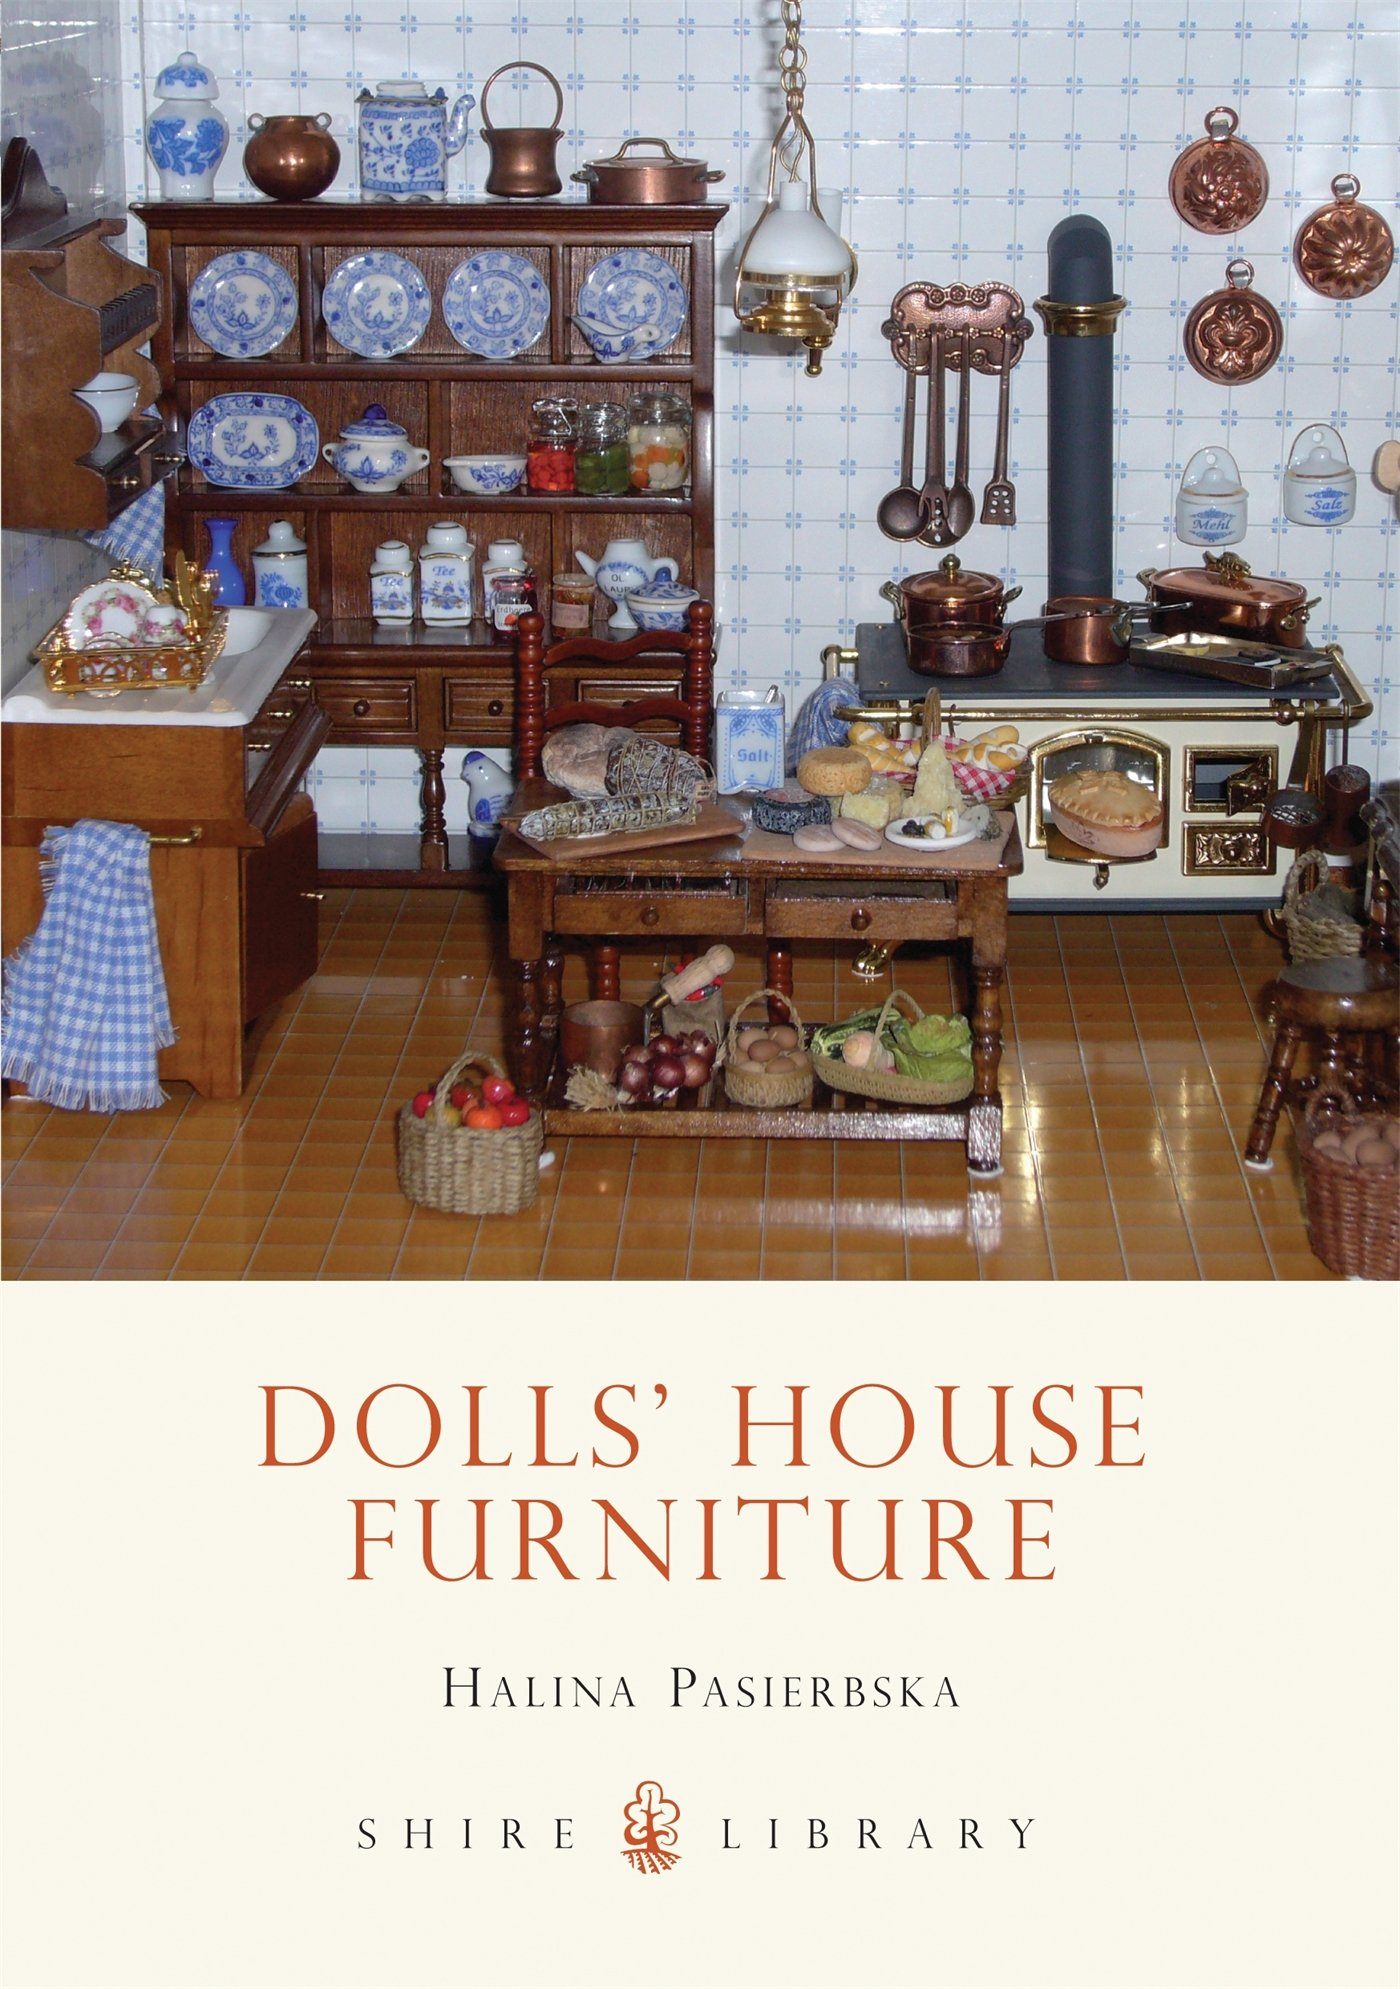 Dolls' House Furniture  Shire Library